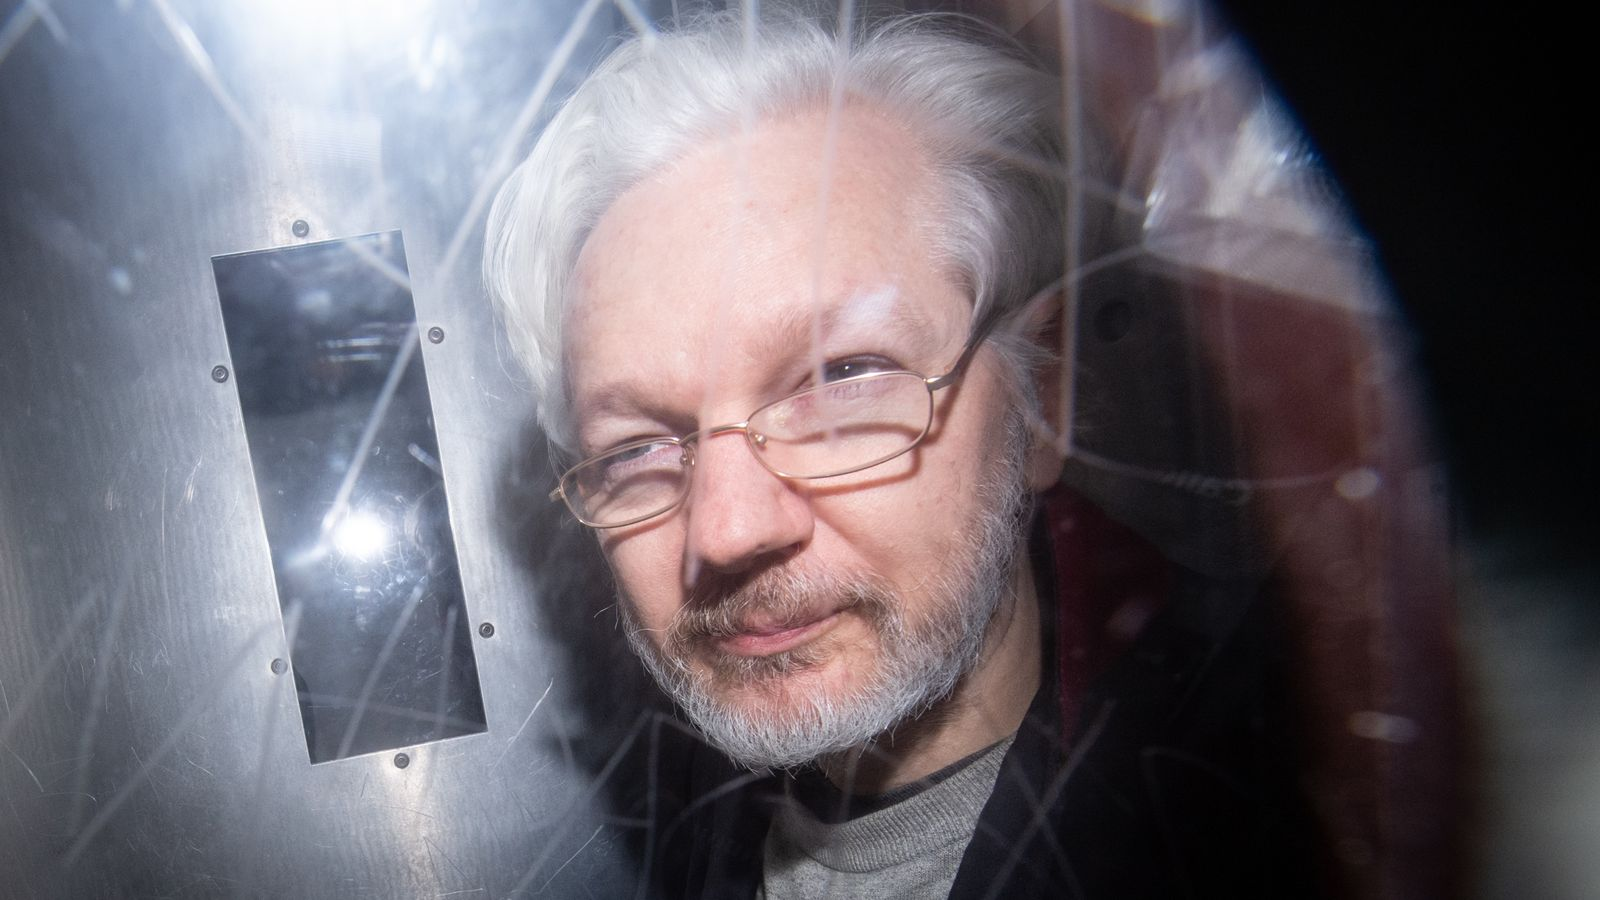 Julian Assange could be effectively tortured to death in Belmarsh, doctors claim